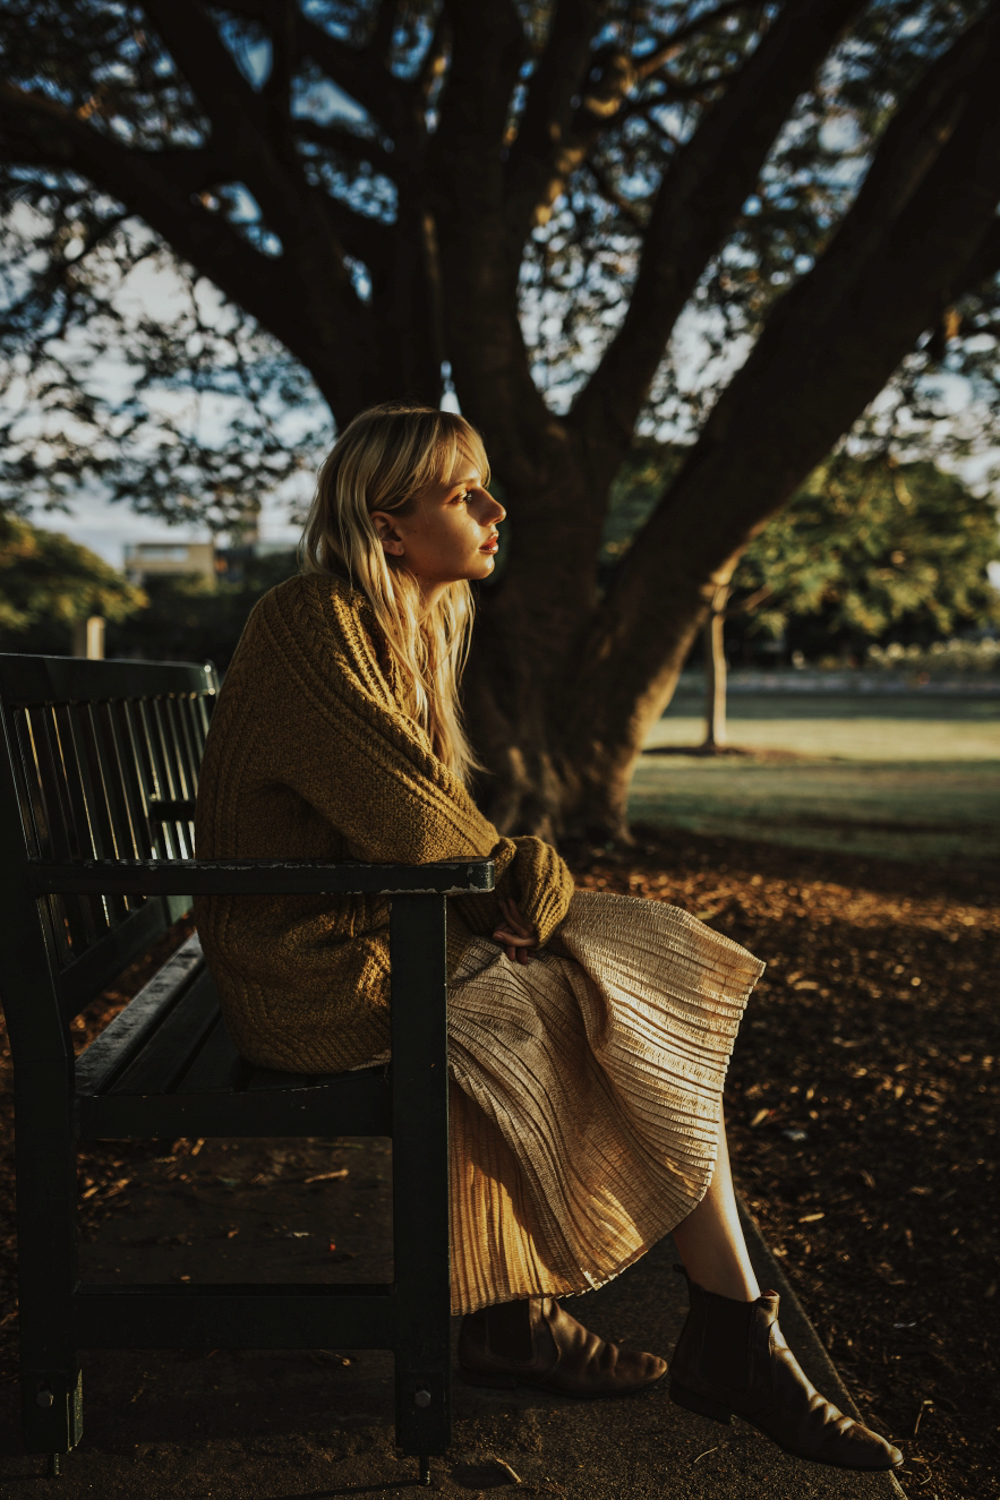 Blonde model gazes at sunset on a park bench during beautiful ph